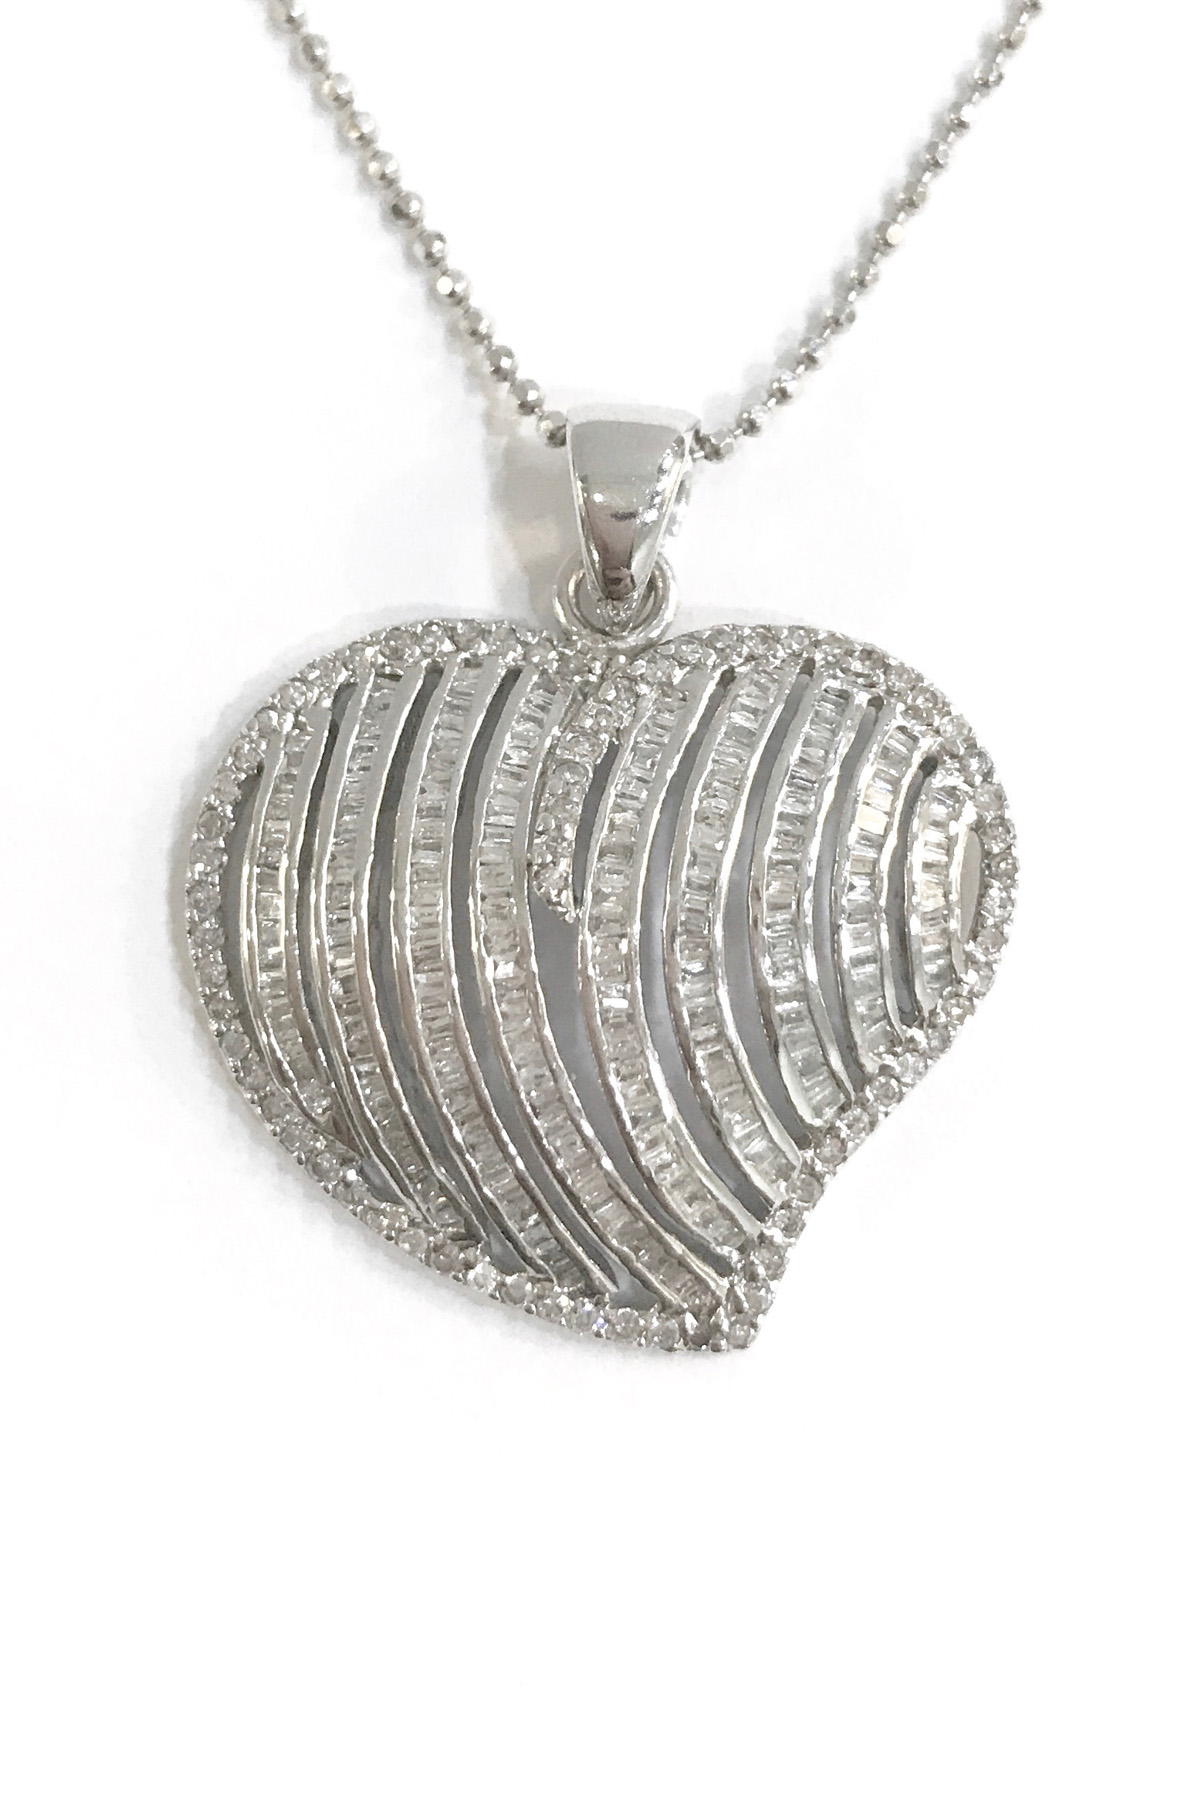 14k white gold necklace with pendant